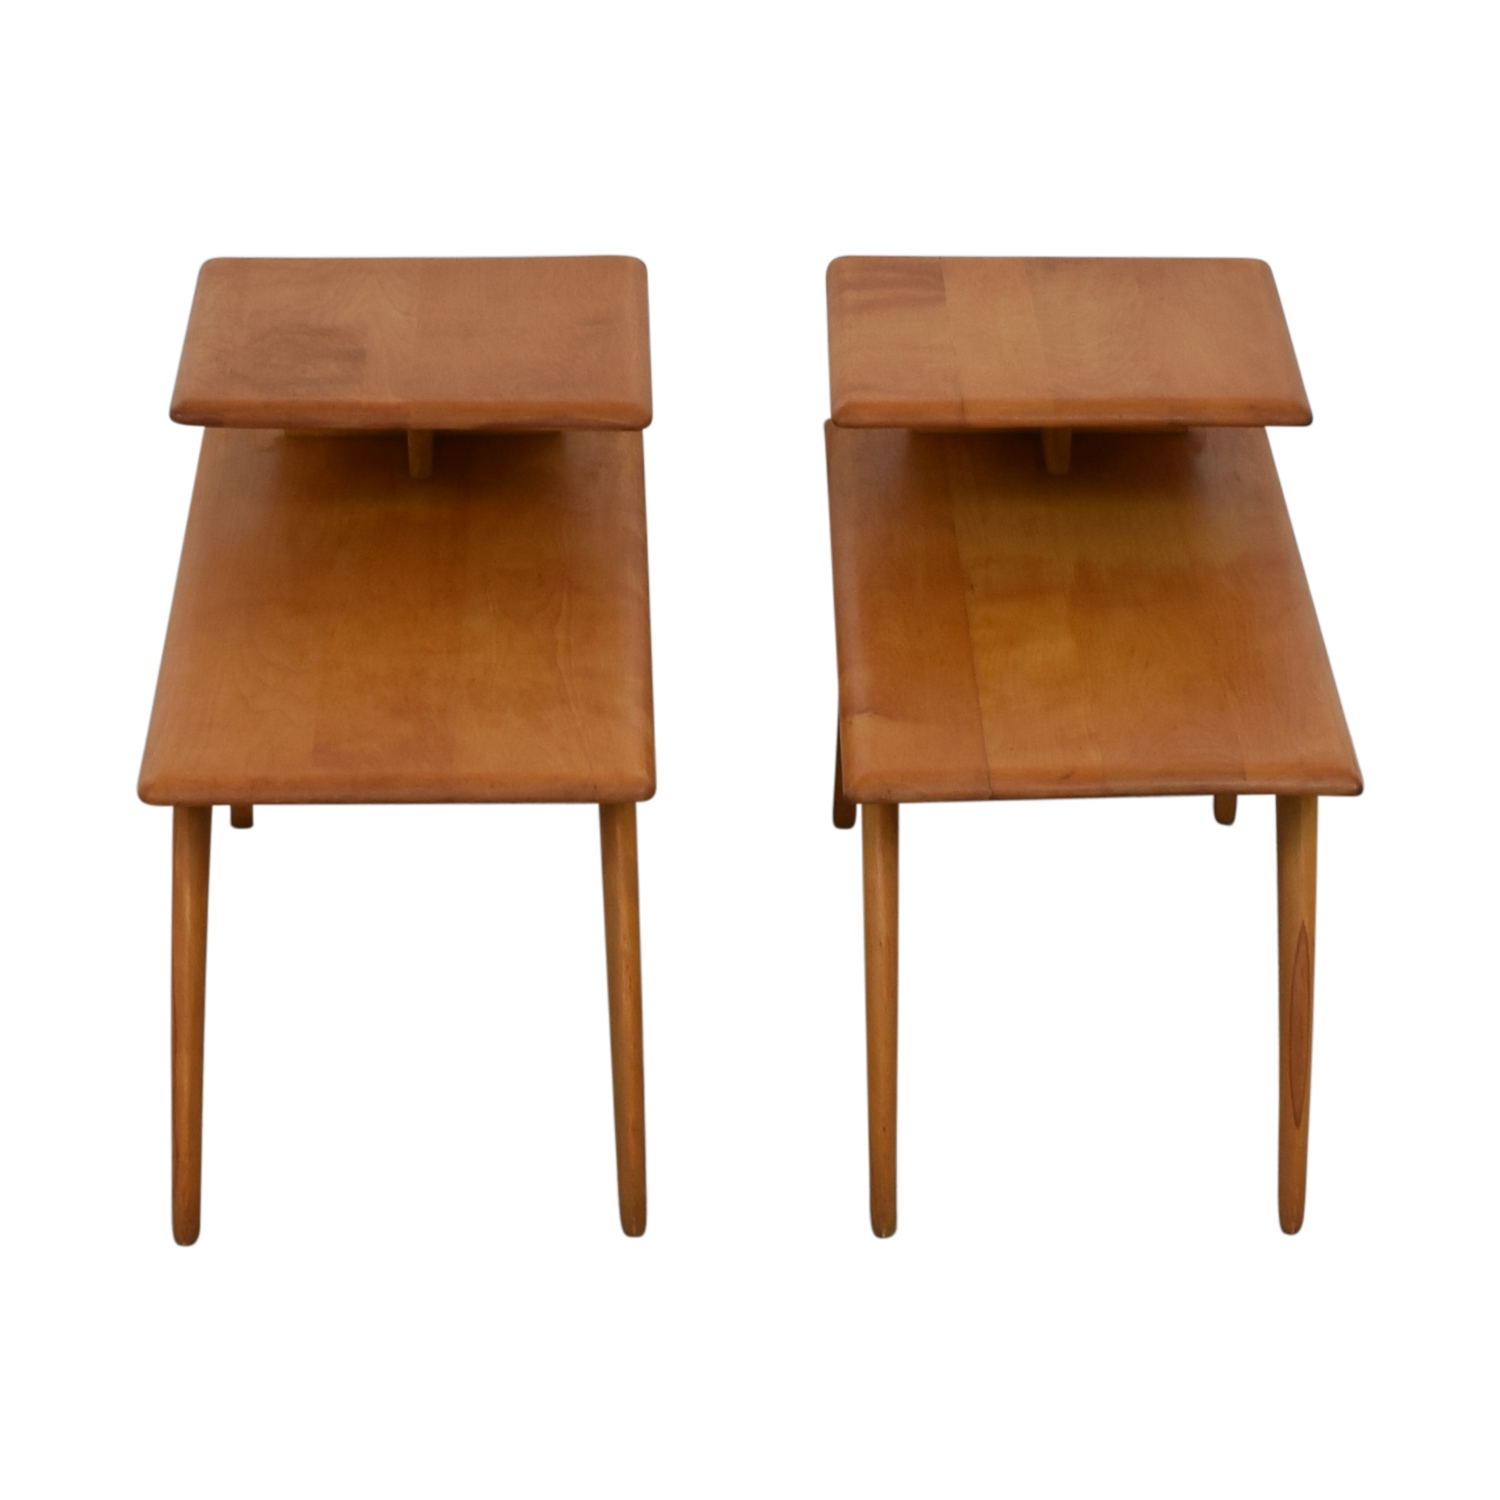 buy Heywood Wakefield Wood End Tables Heywood Wakefield End Tables